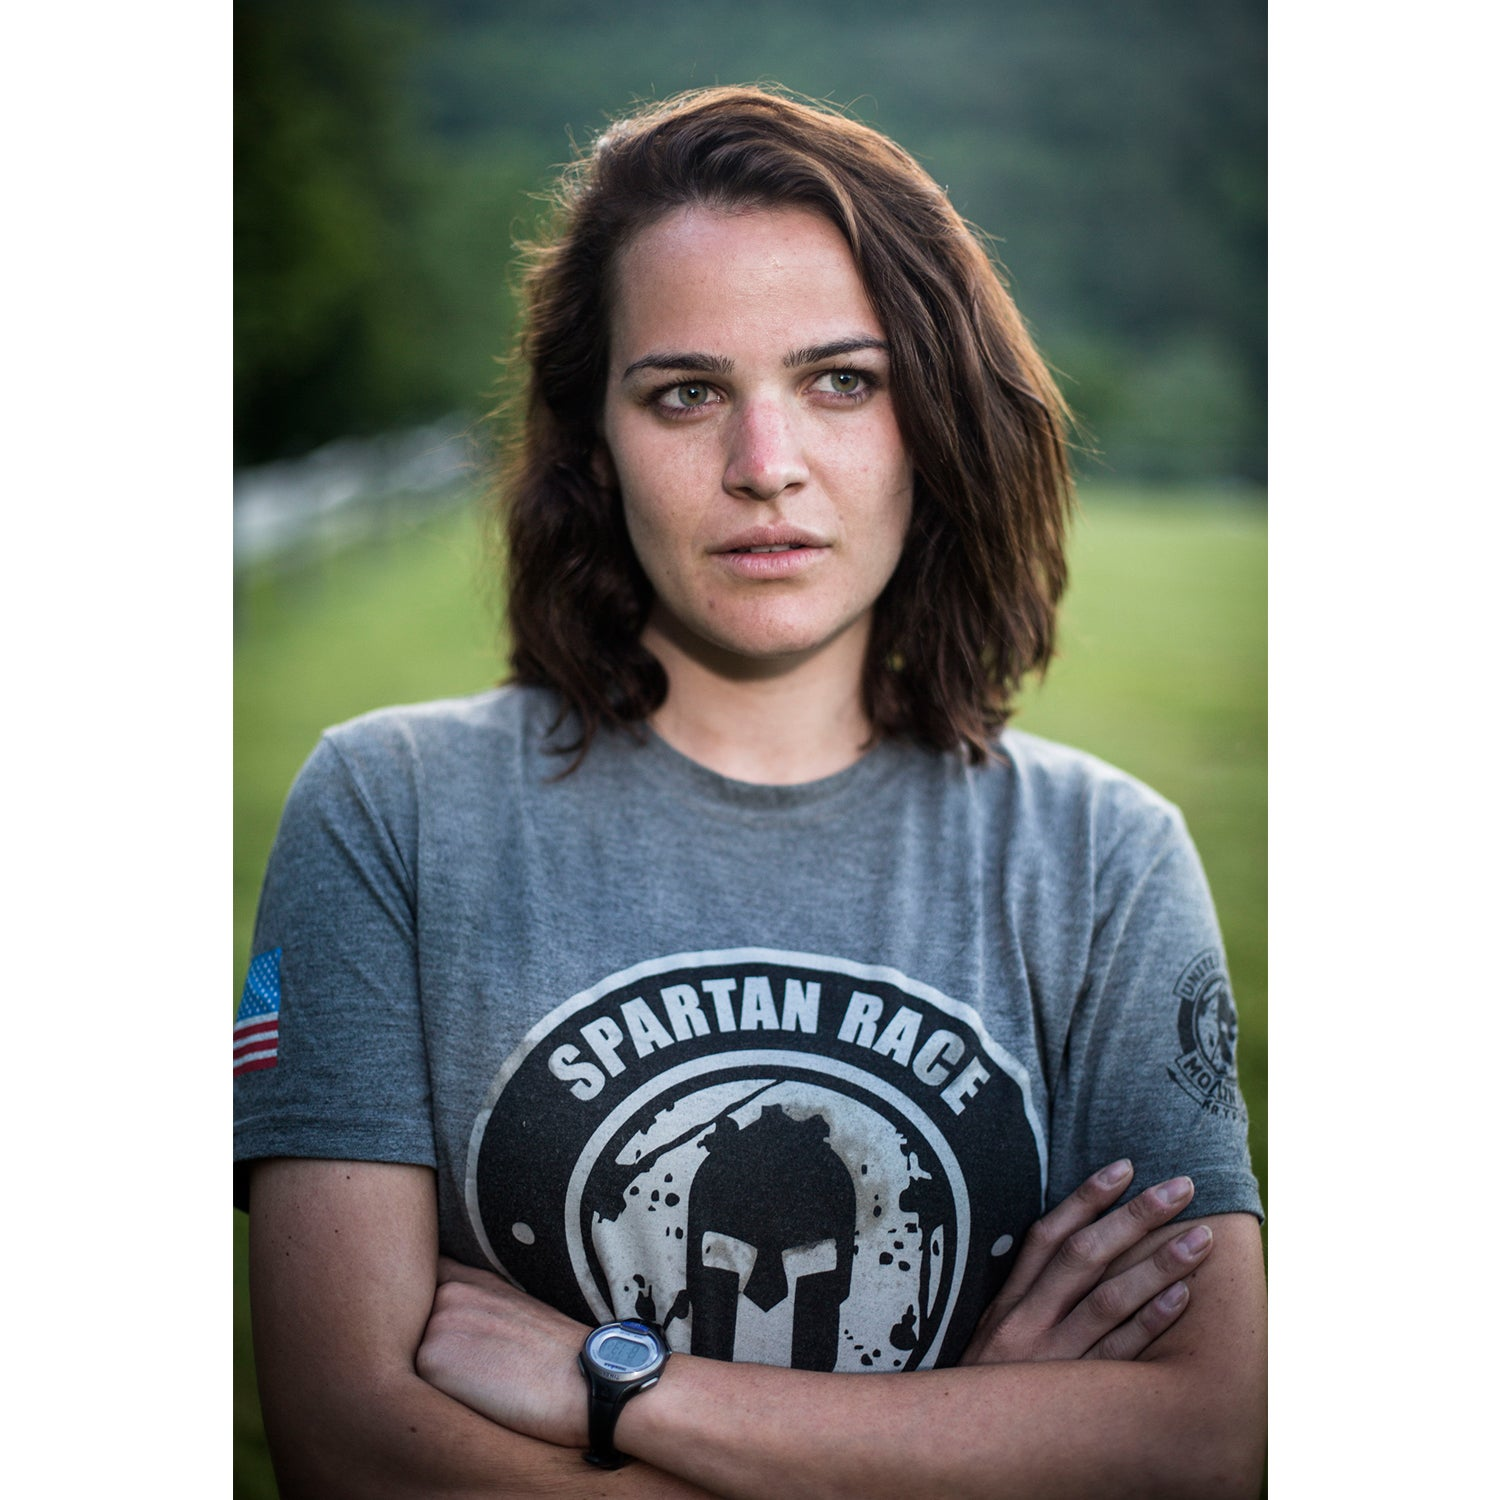 Neely Fortune was assaulted by a close friend in 2010, and shortly after found the body of her assailant after he took his own life. Fortune took that troubling life event, which resulted in PTSD, and turned into motivation to recover. She tackled the Vermont 100 ultramarathon, the TARC 100, the Mexico Death Race, and many others. Taking every opportunity to push herself, Fortune even entered to compete for Miss Vermont USA and won the crown in 2016. Most recently, Fortune has taken a leadership position as an event leader at the Spartan Agoge.